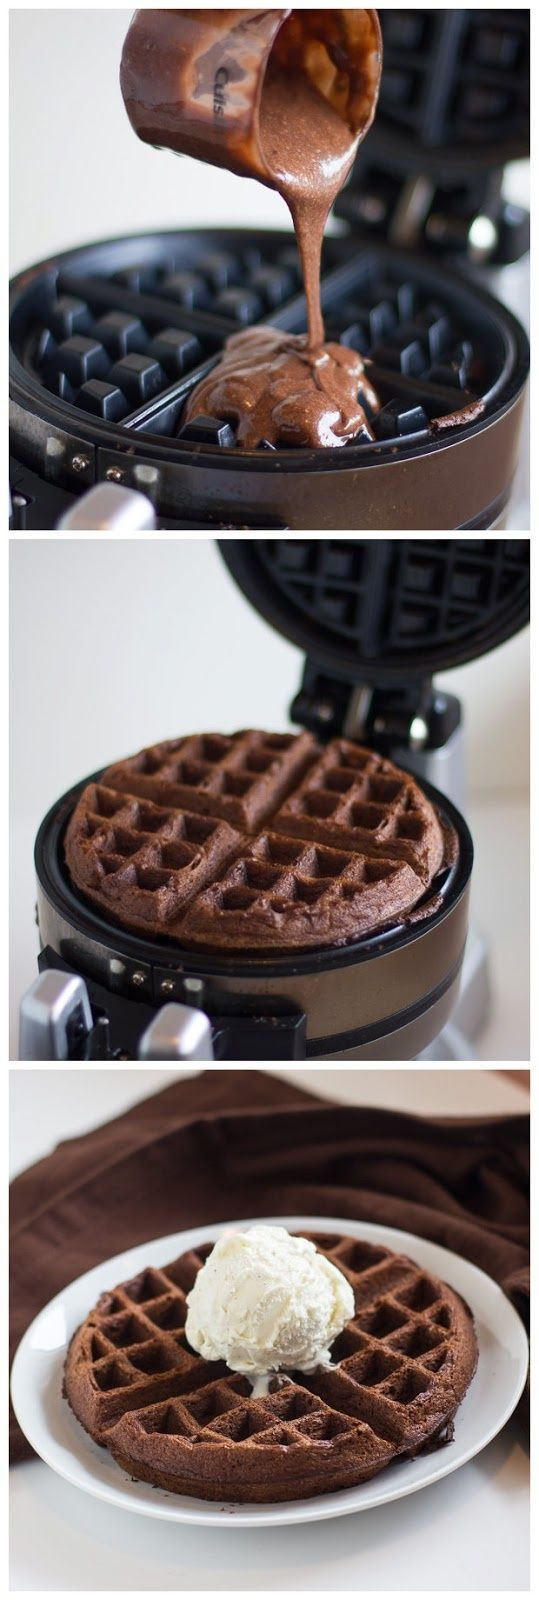 Cake Mix Waffles: Make cake mix as directed on box, pour into waffle iron, add ice cream!.